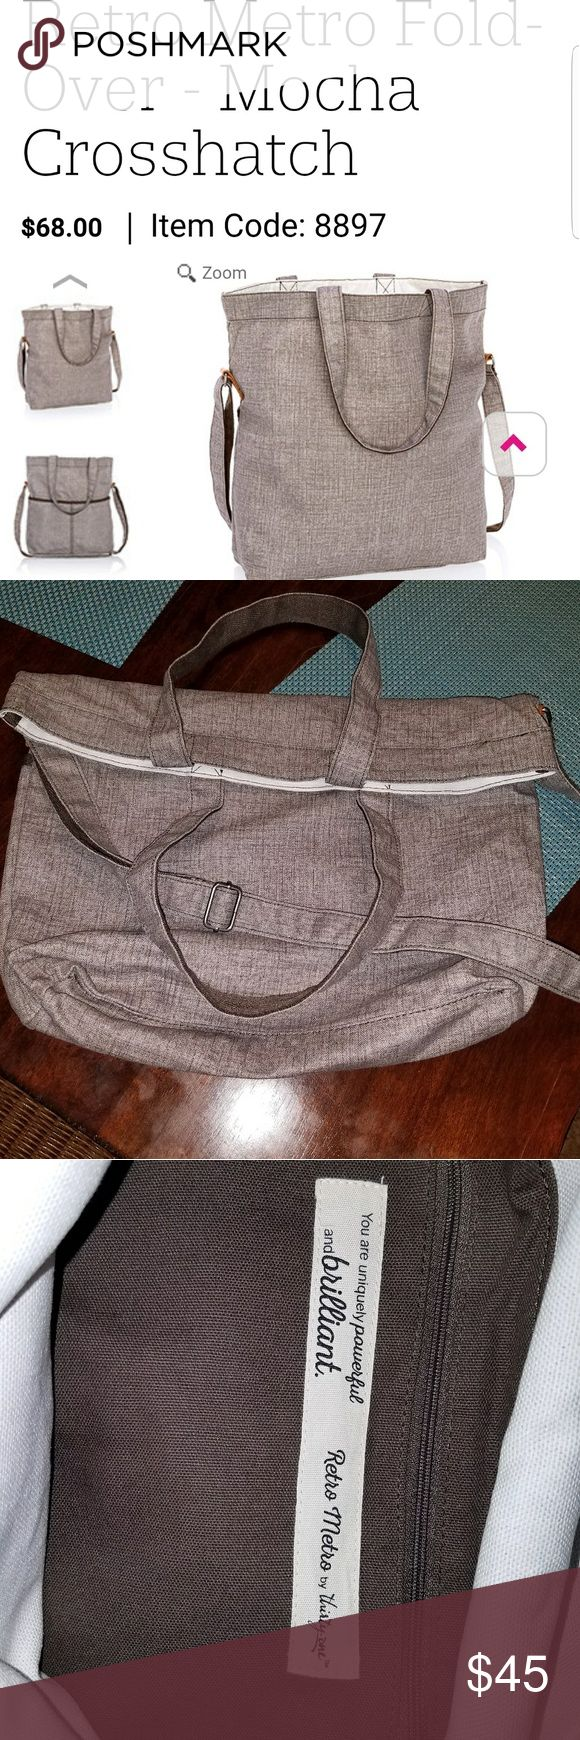 Retro Metro Bag. NEW Brand new Thirty One Retro Metro Bag. Sells for $68....wanted purse size, didn't realize it was so large. Brand new, never used. Thirty One Bags Crossbody Bags